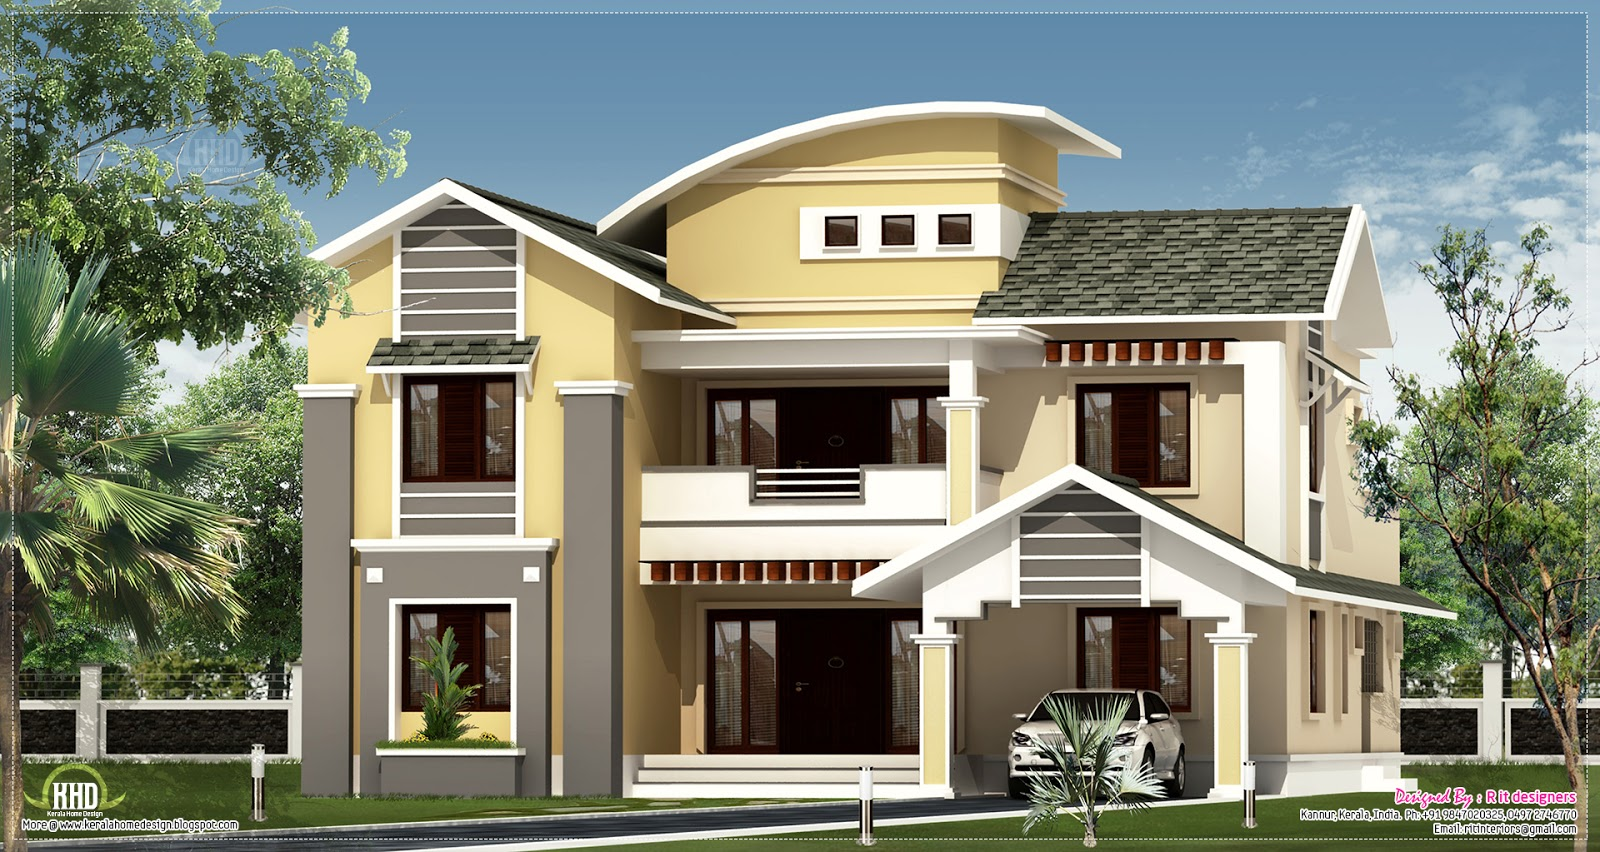 Eco friendly houses 3000 home design from kannur for Villas designs photos